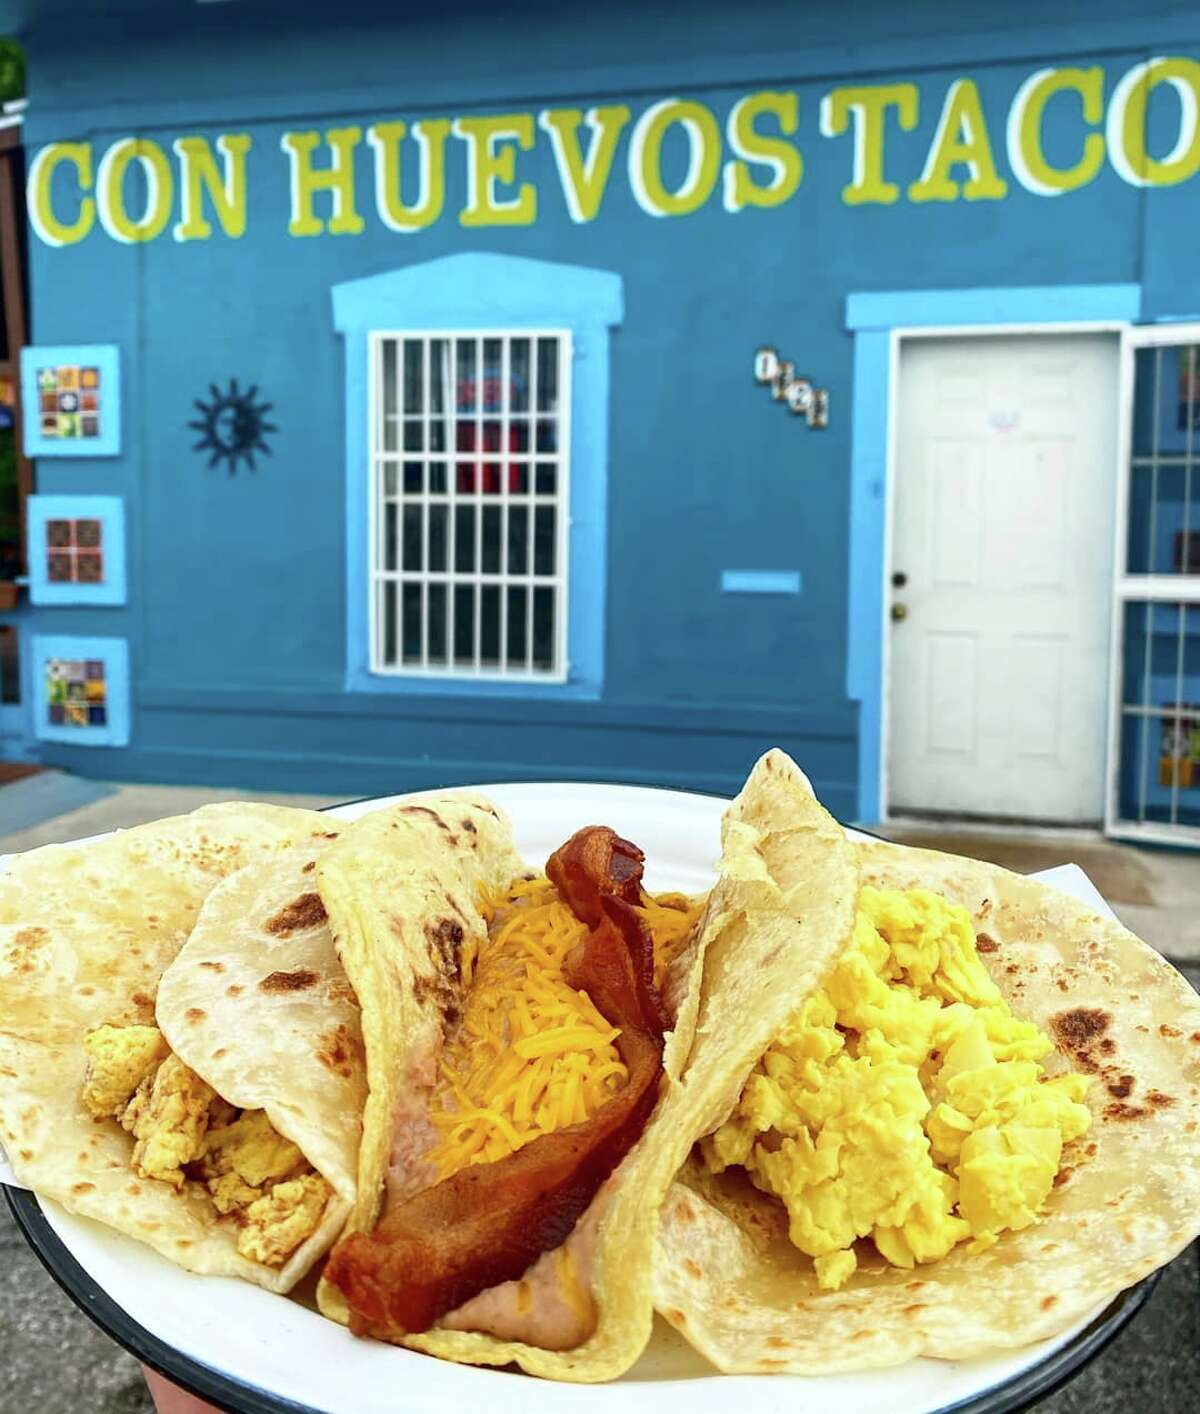 After a grueling pandemic, the owners of East Side's Con Huevos Tacos announced that it is taking a much-needed break this summer.